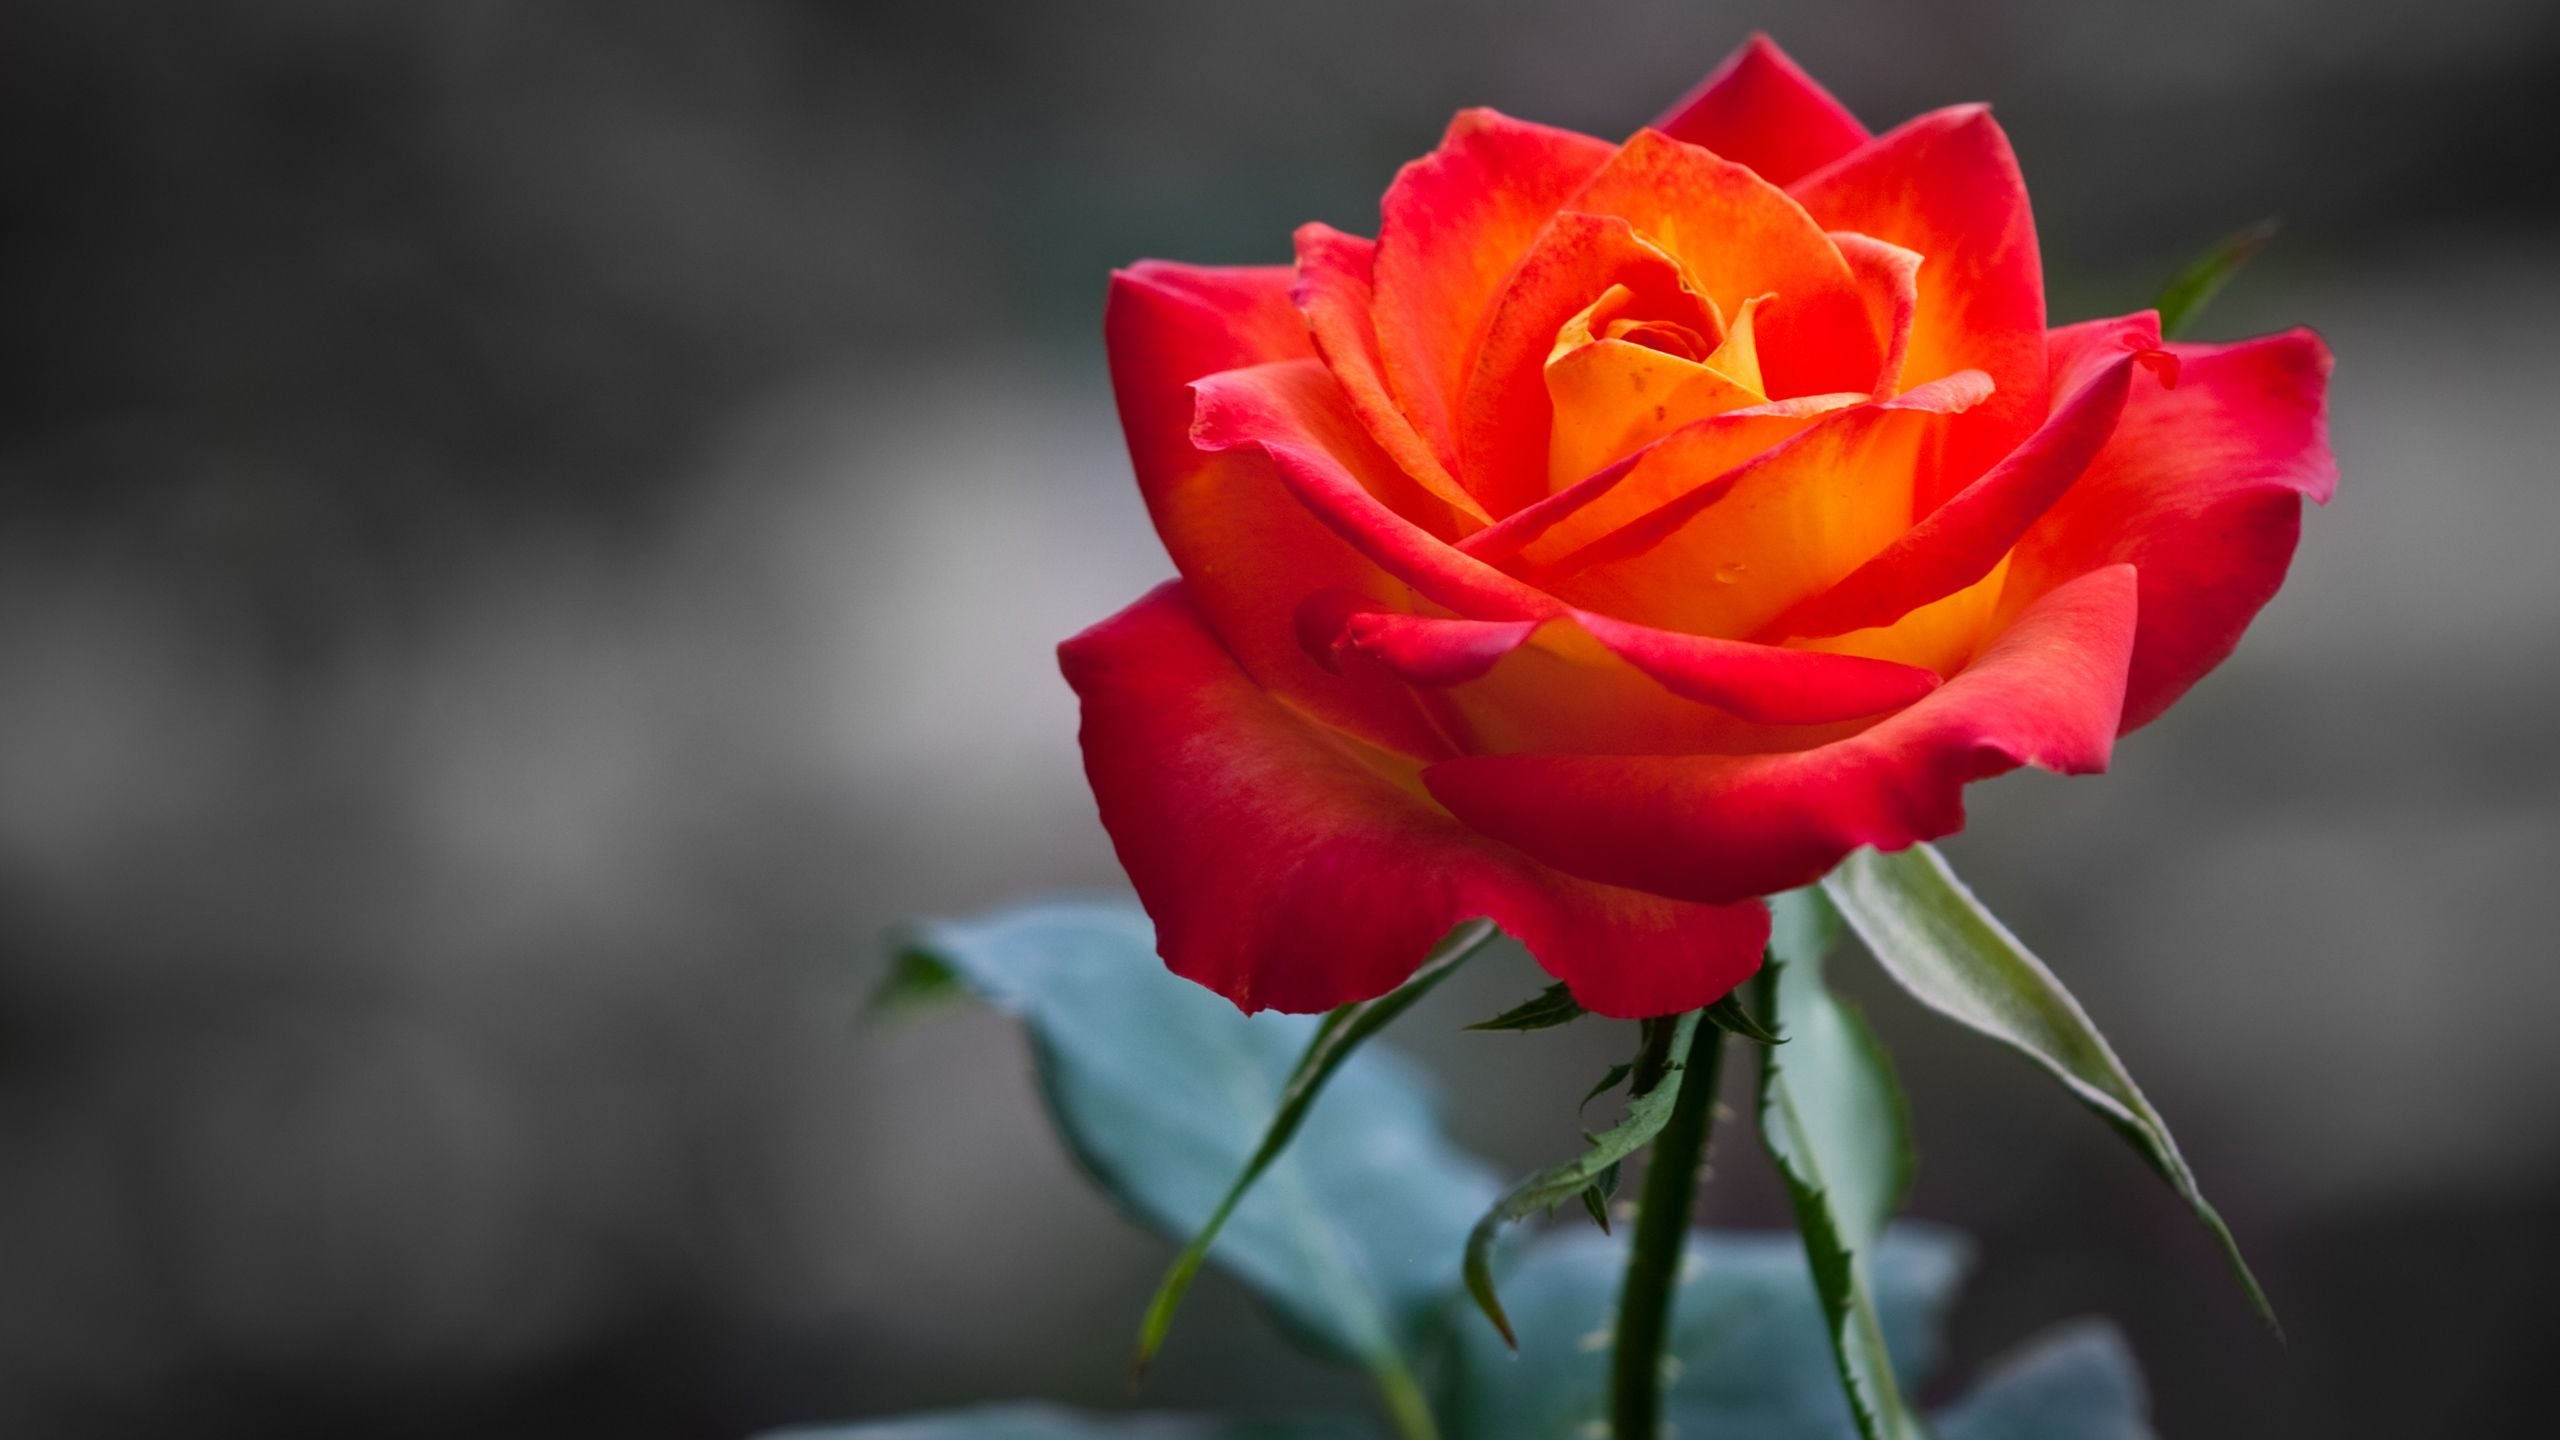 Orange Red Rose Hd Wallpaper For Desktop Rose Flower Wallpaper Beautiful Roses Orange Roses